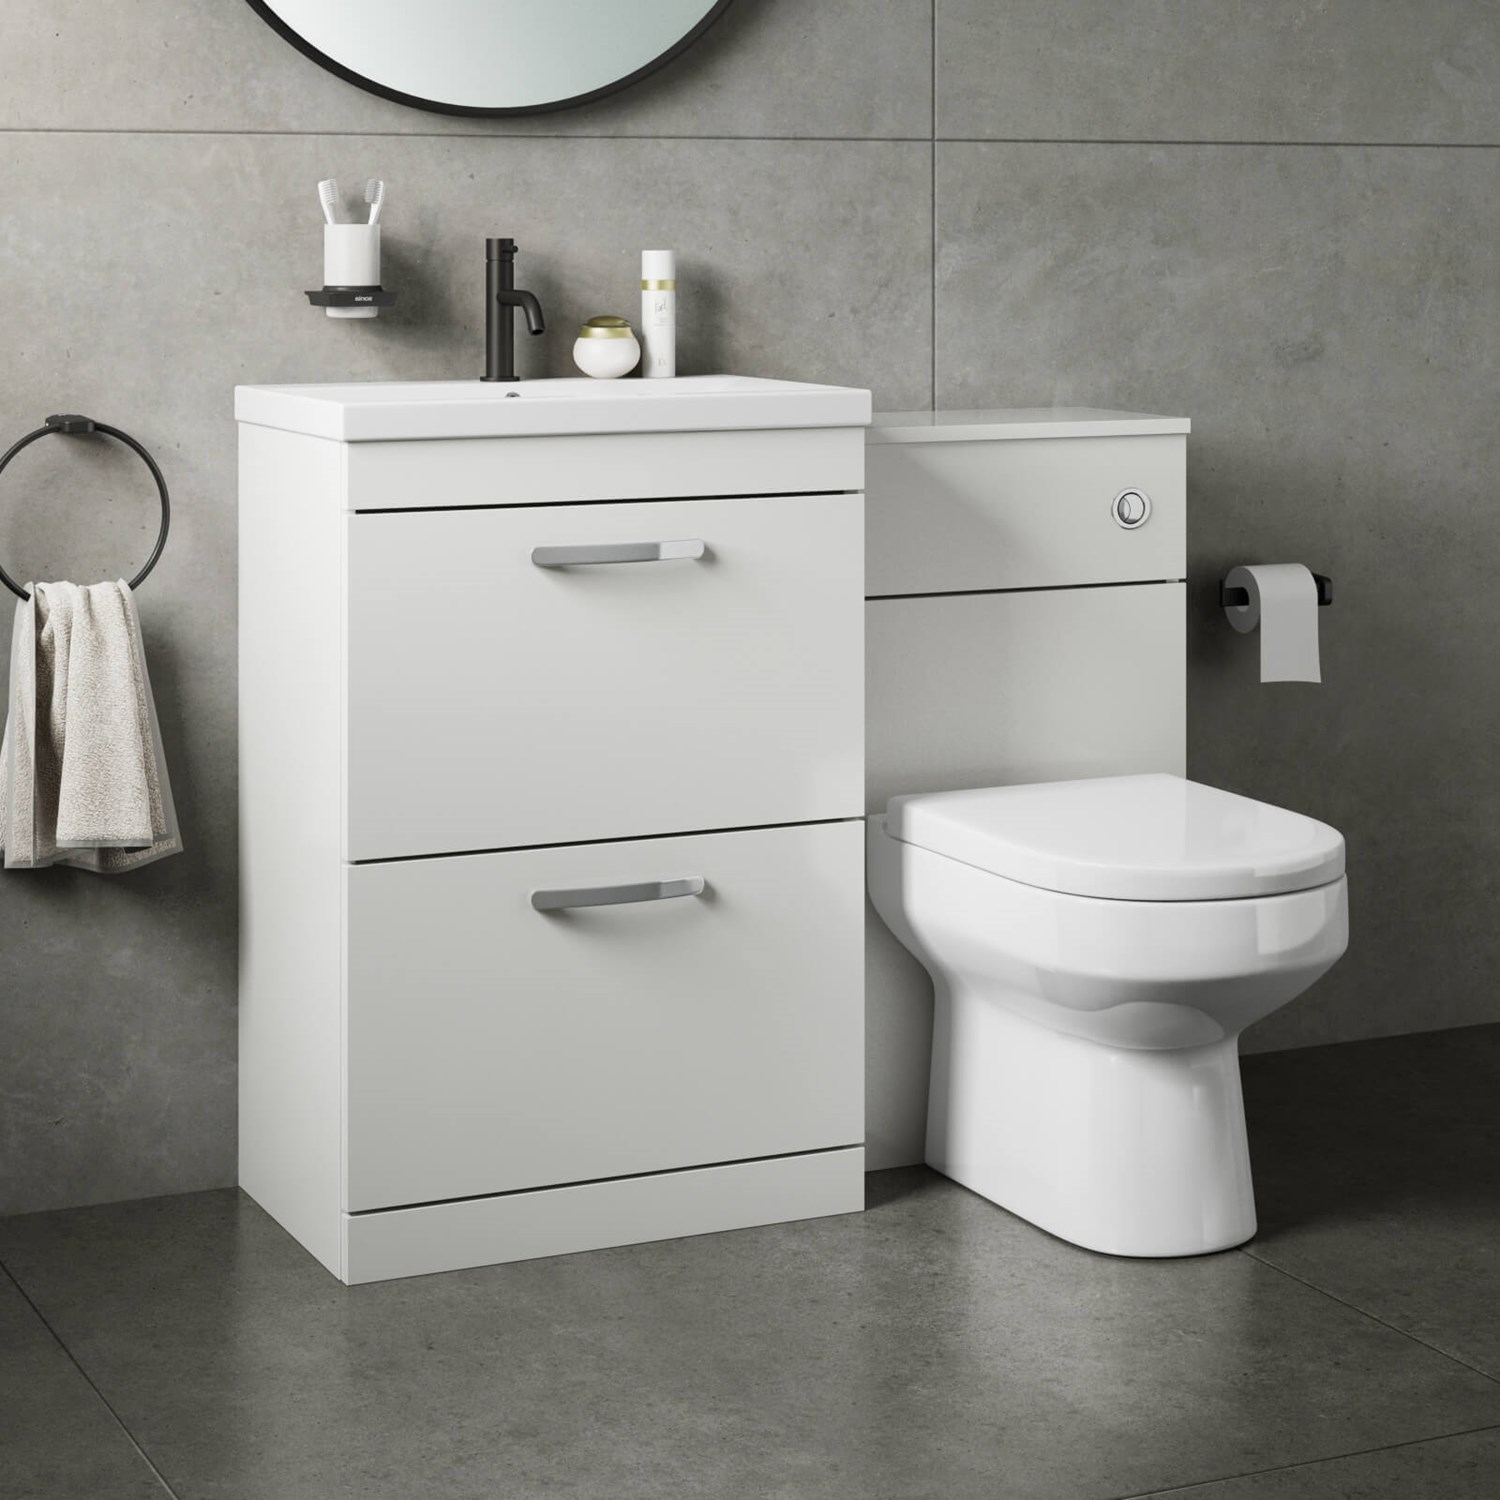 Combined Basin & Toilet Furniture Units | Tap Warehouse